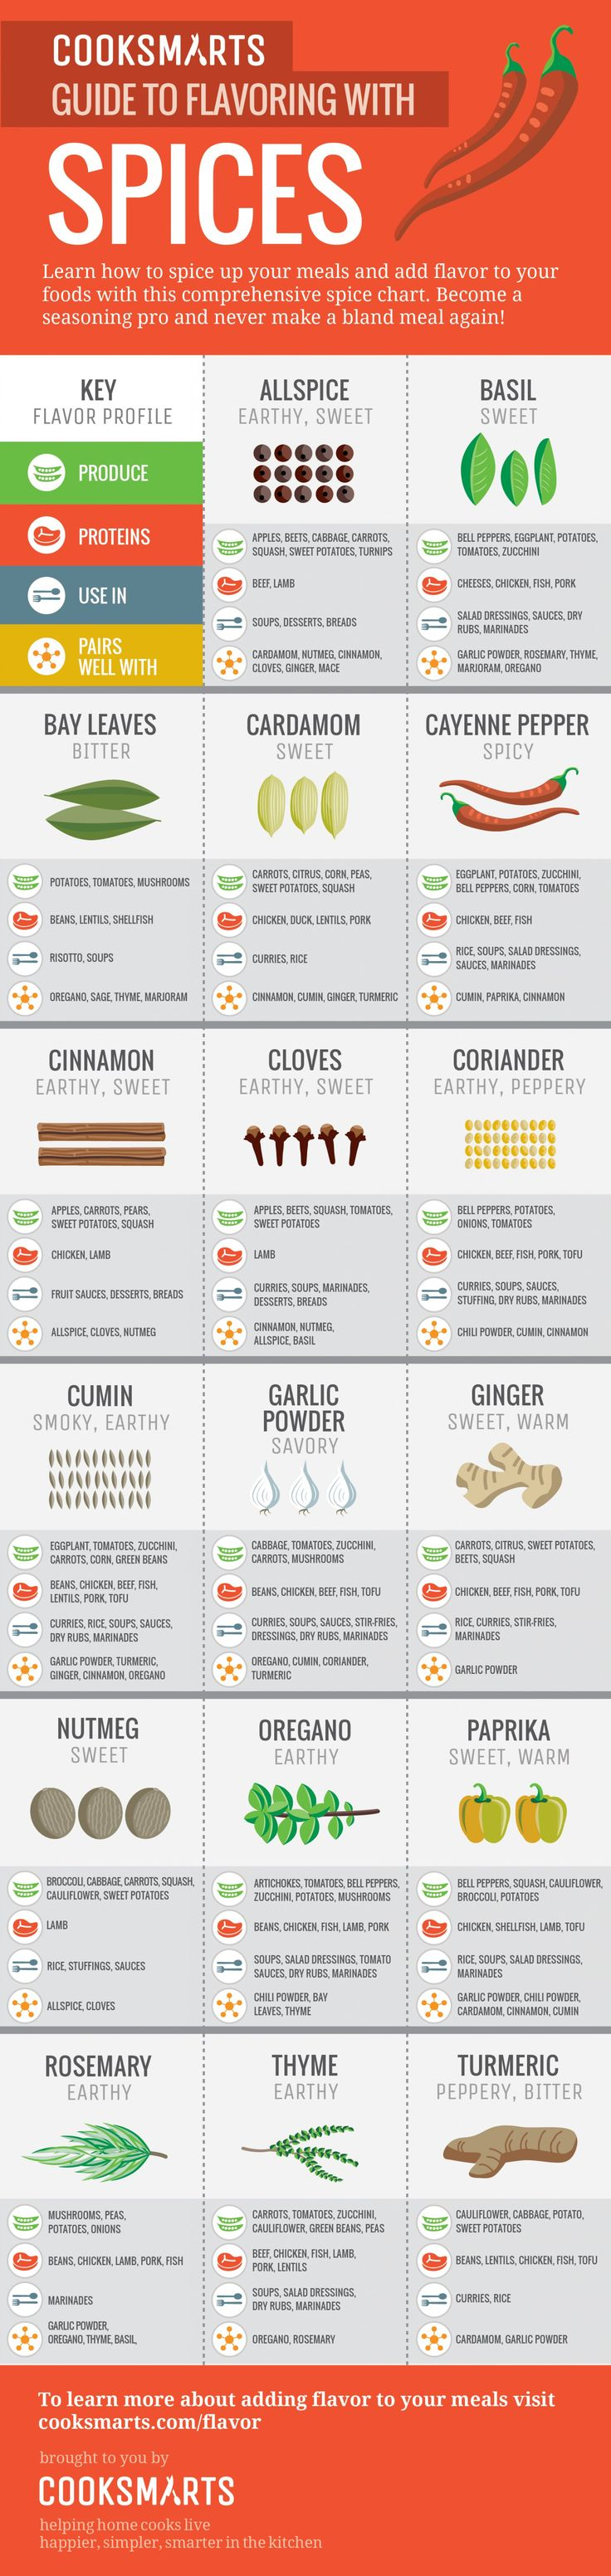 Guide to Flavoring with Spices